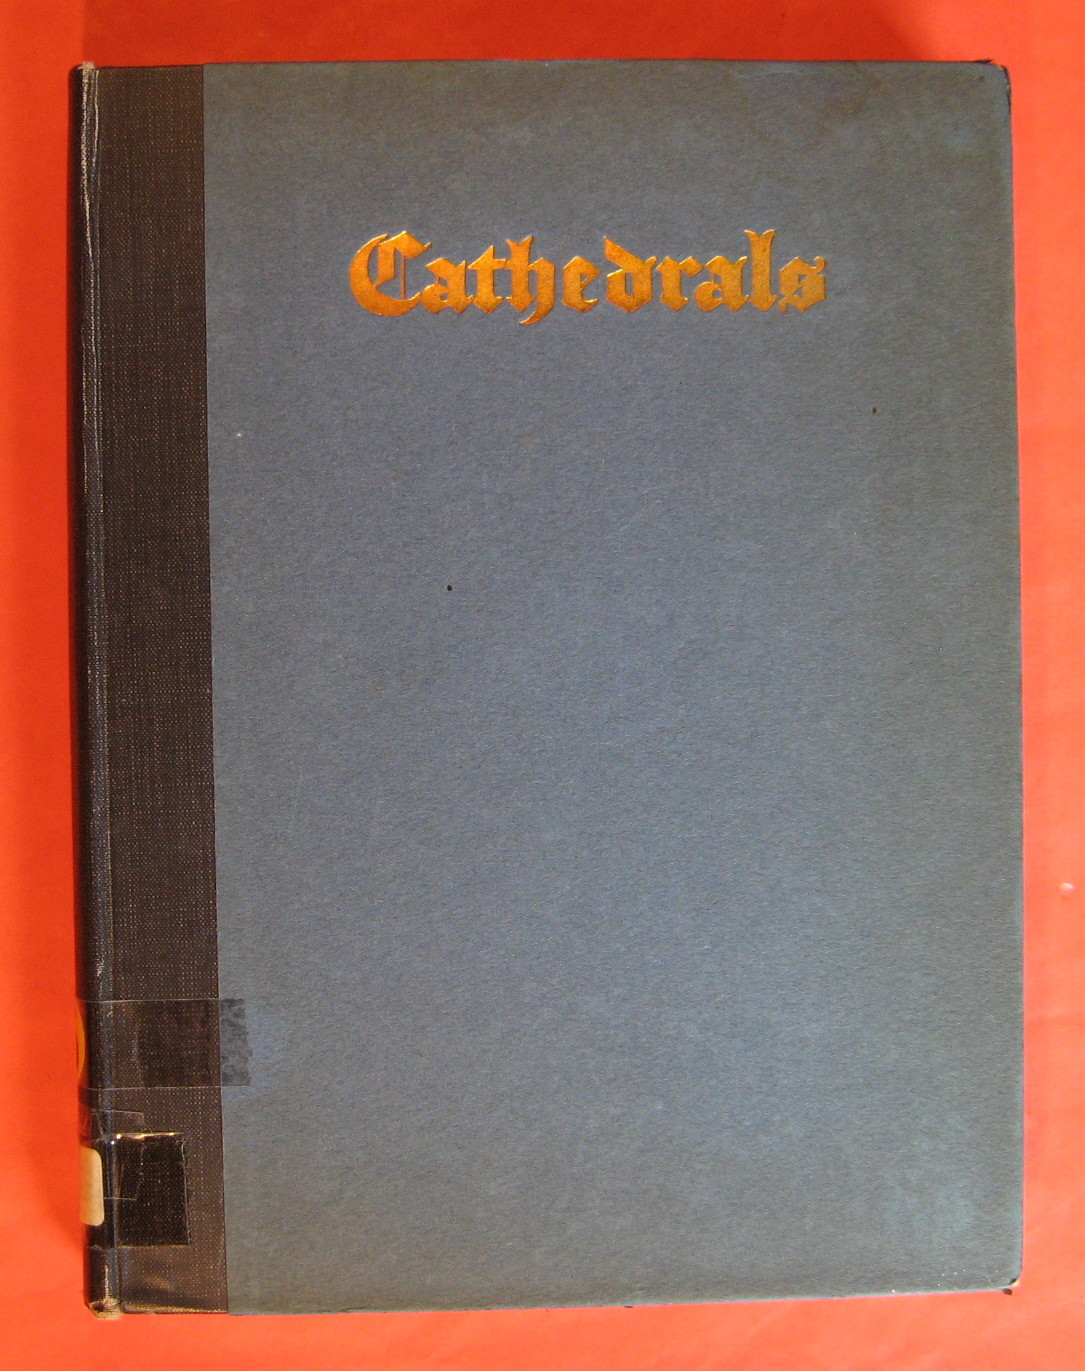 Cathedrals with Seventy-four Illustrations By Photographic Reproduction and Seventy-four Drawings